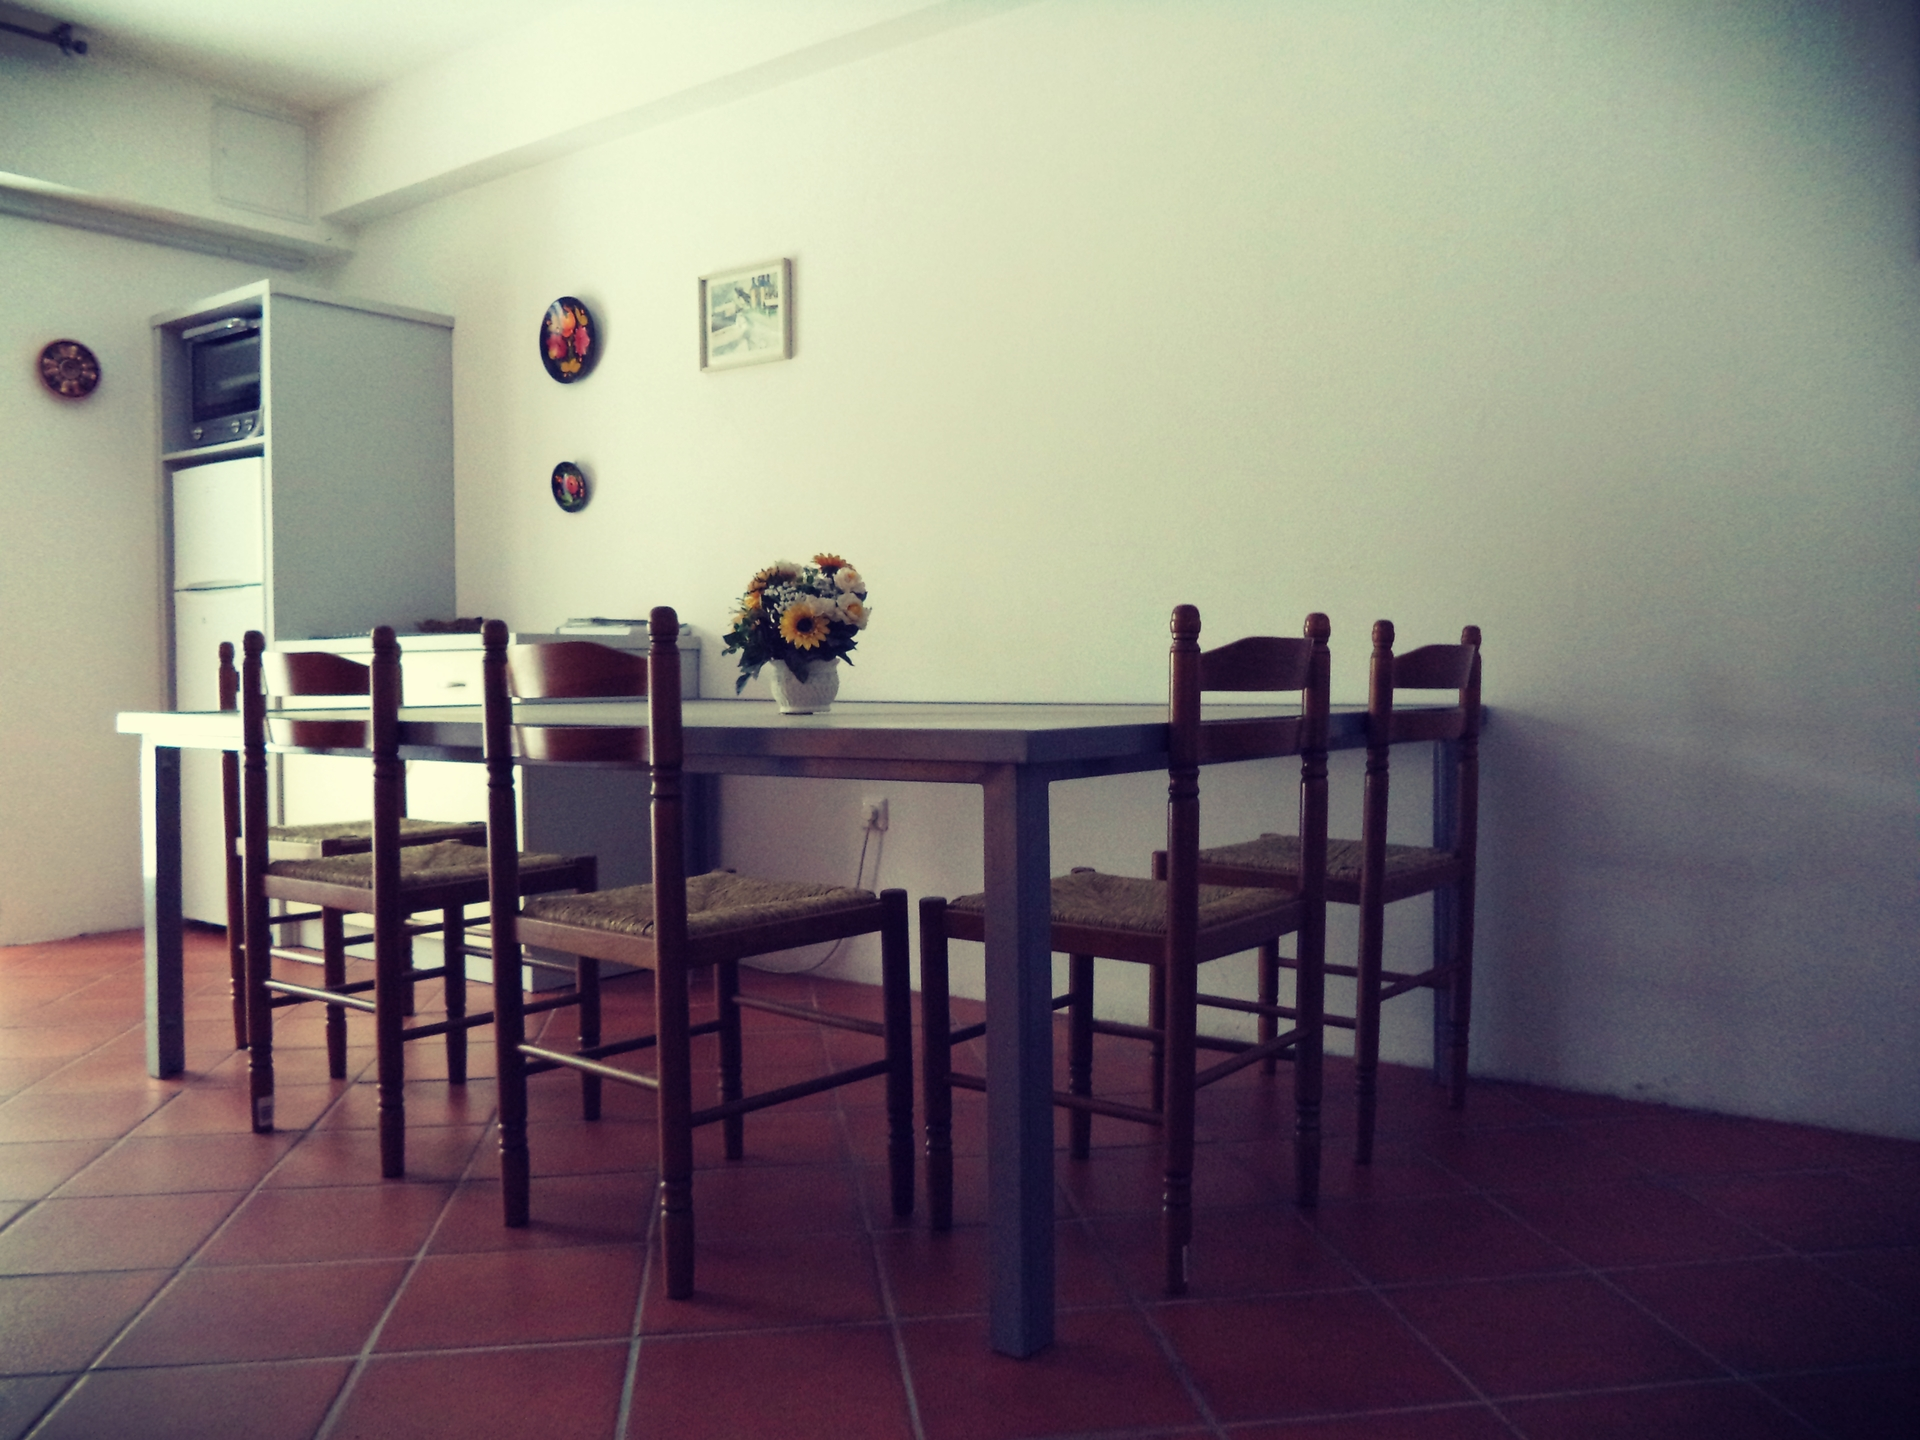 A view of the dining table (large apartment).